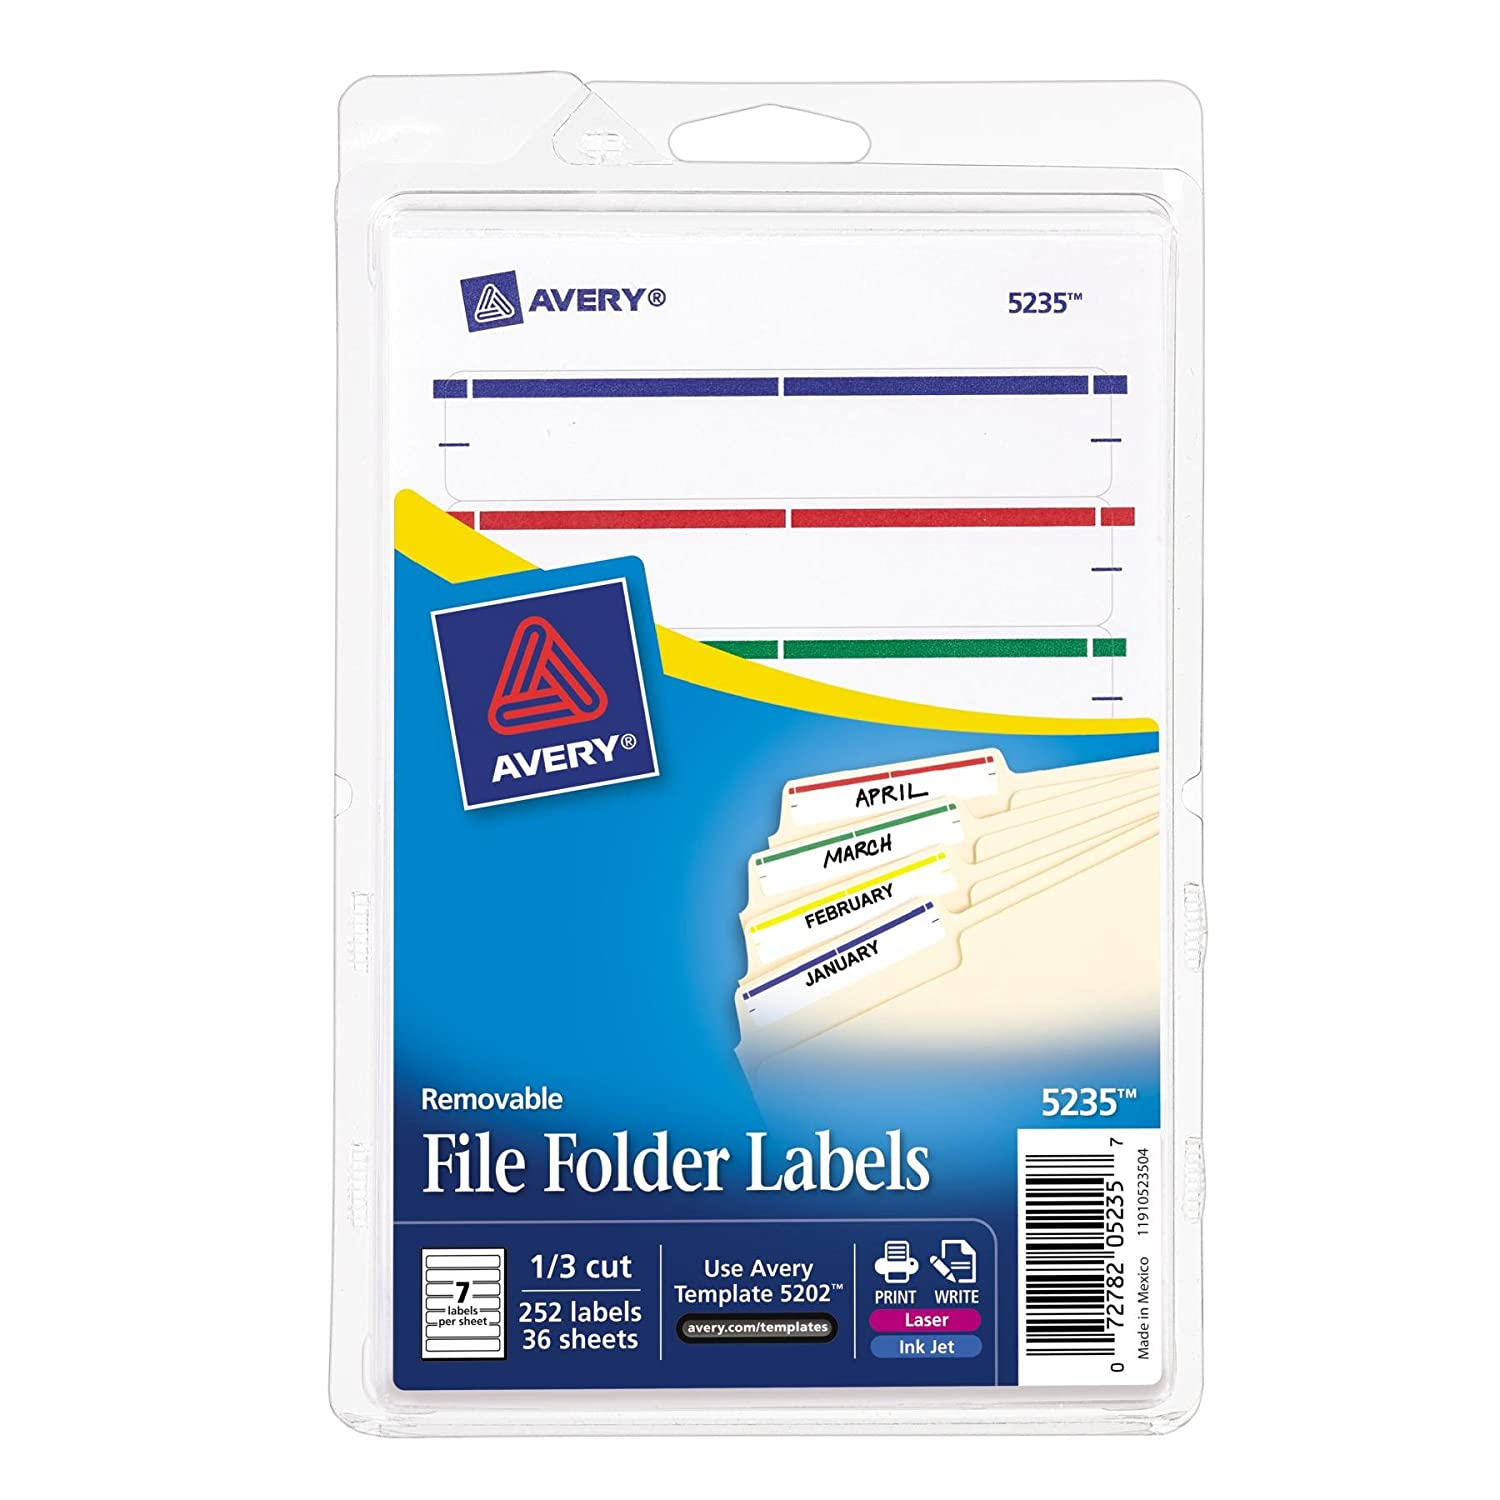 Amazon Avery Removable File Folder Labels Assorted 13 Cut